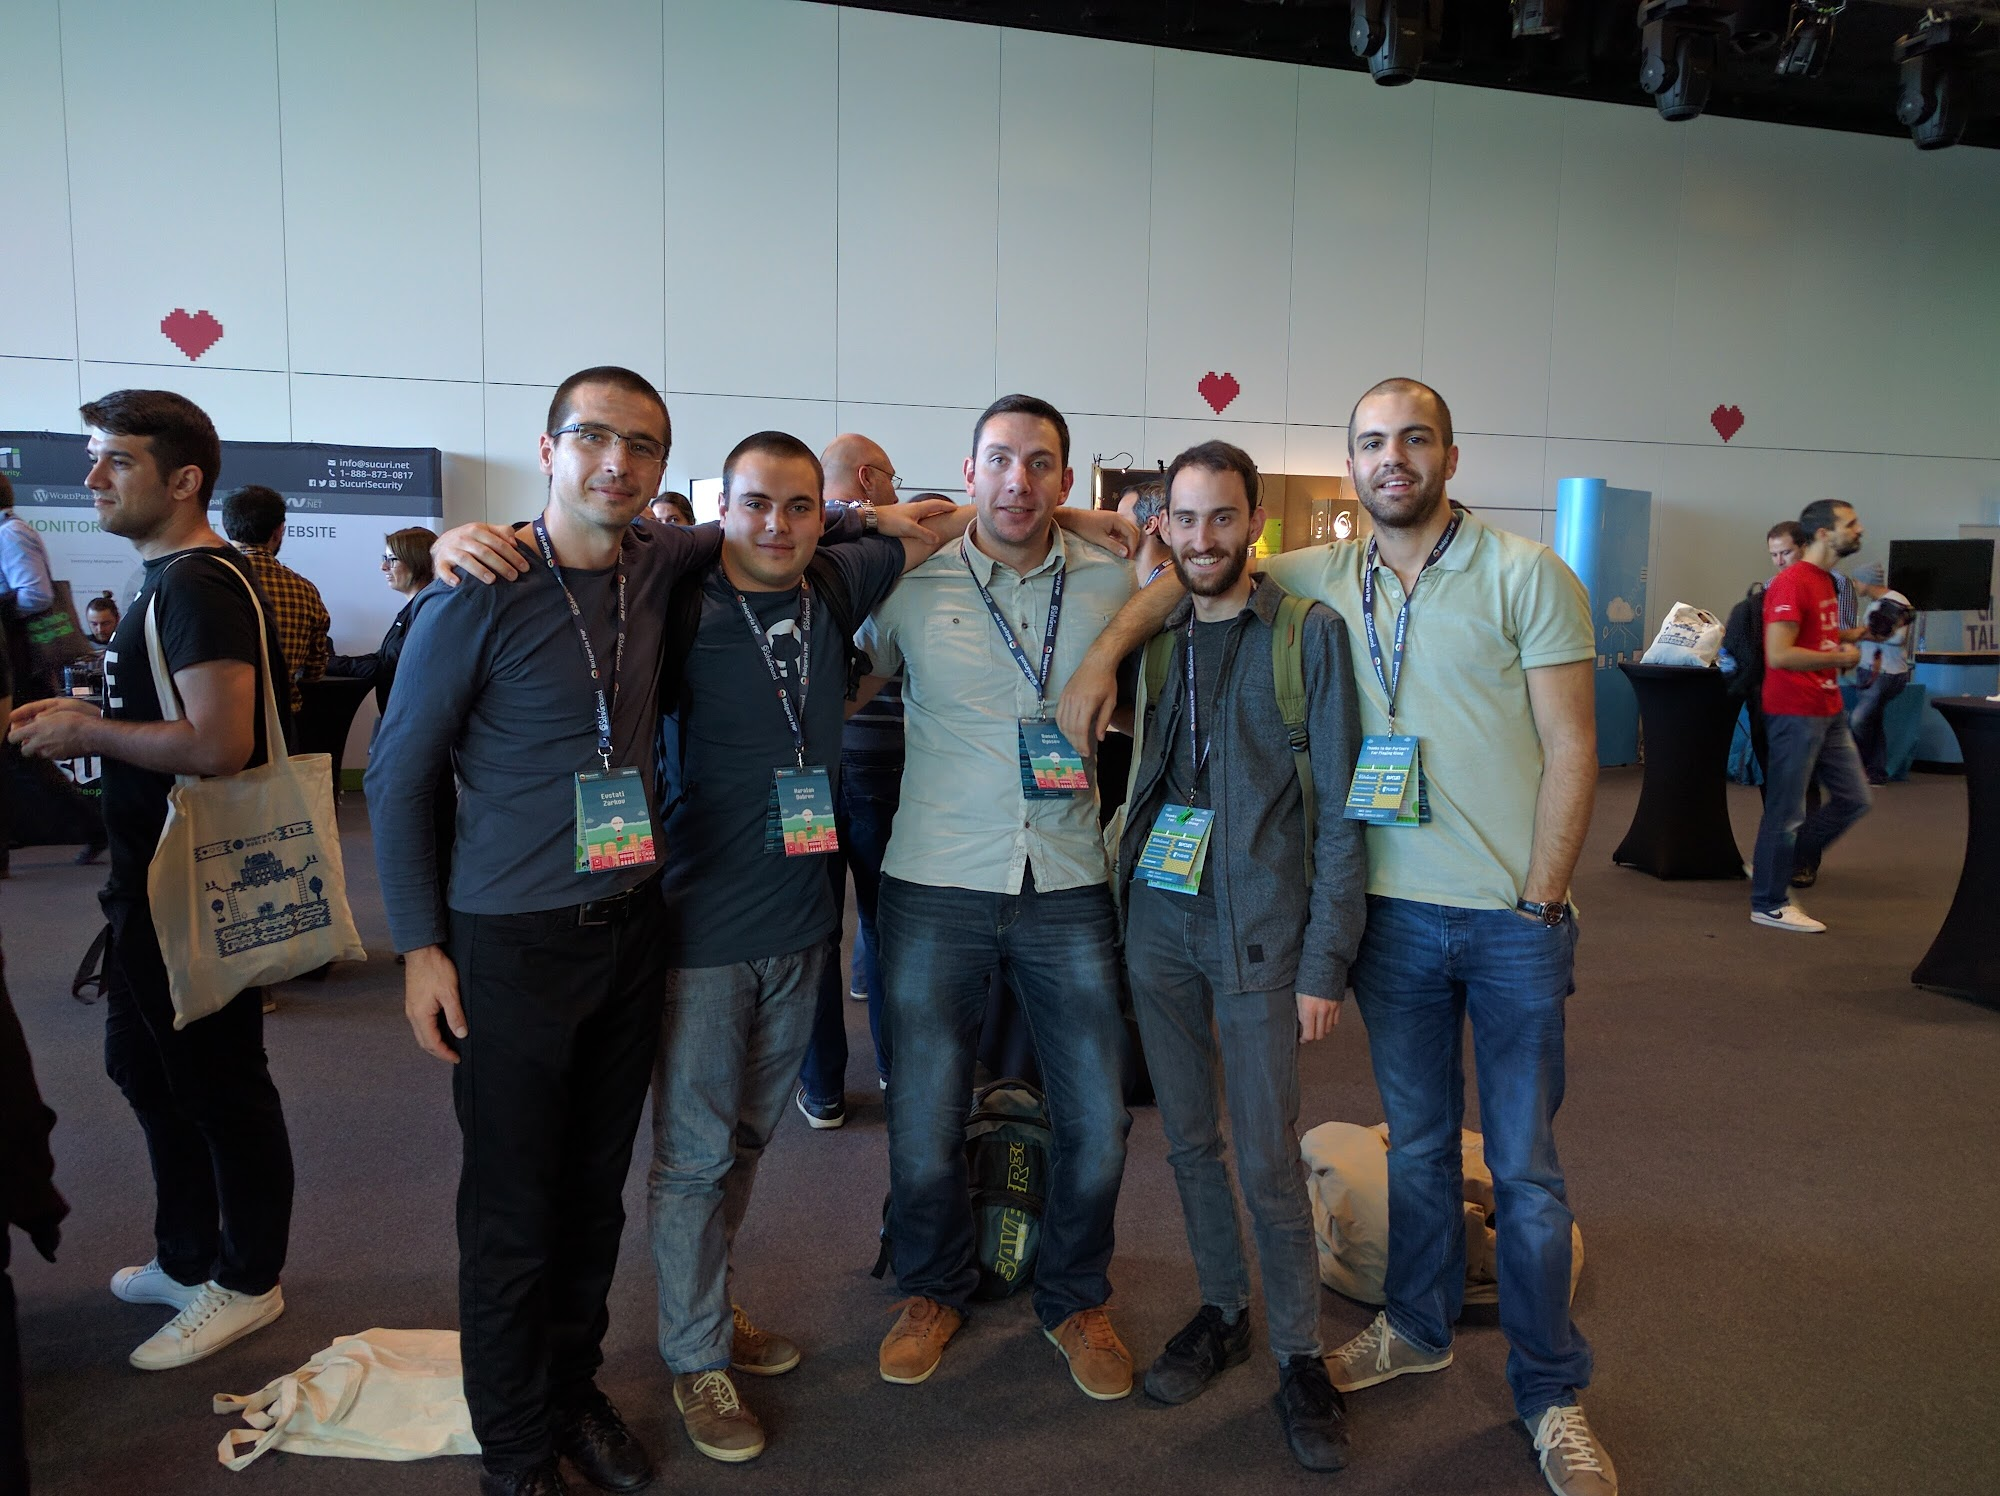 Clippings dev team at the conference